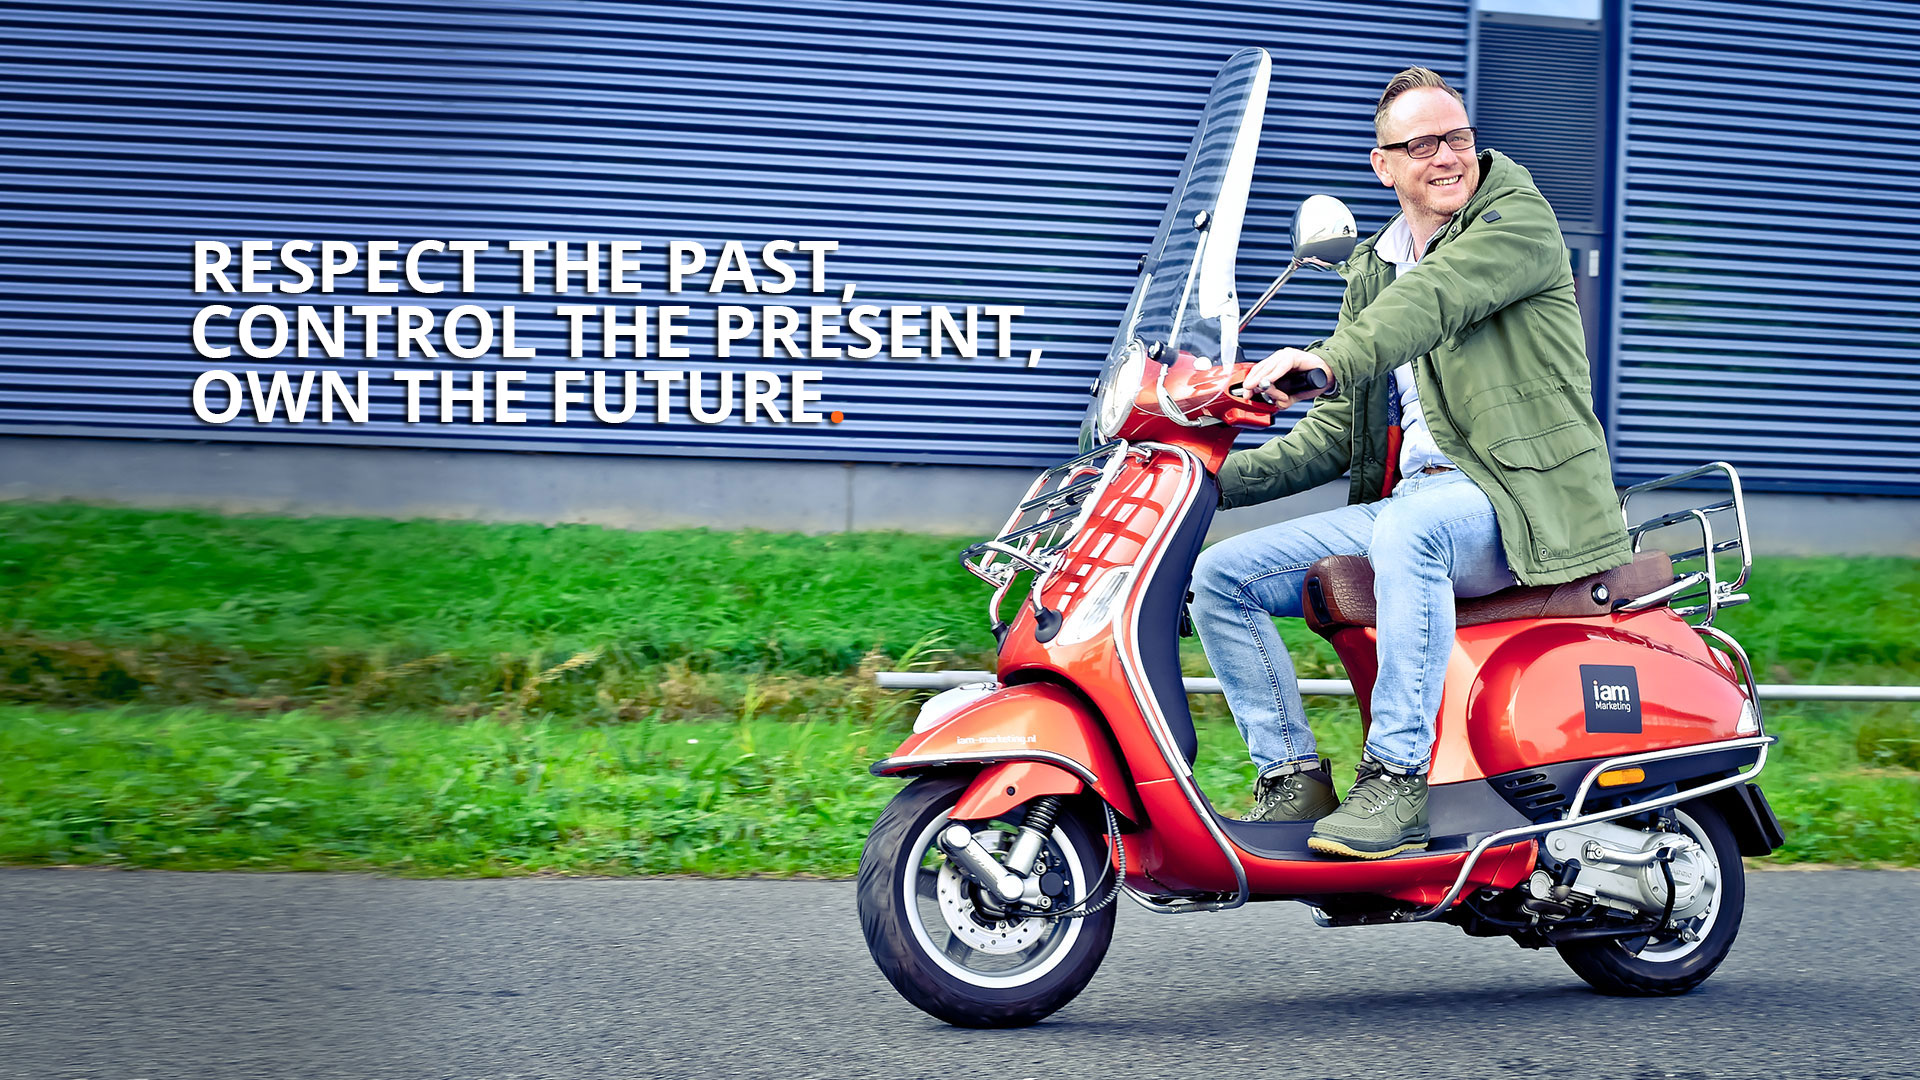 iam-marketing-arjan-scooter-pc